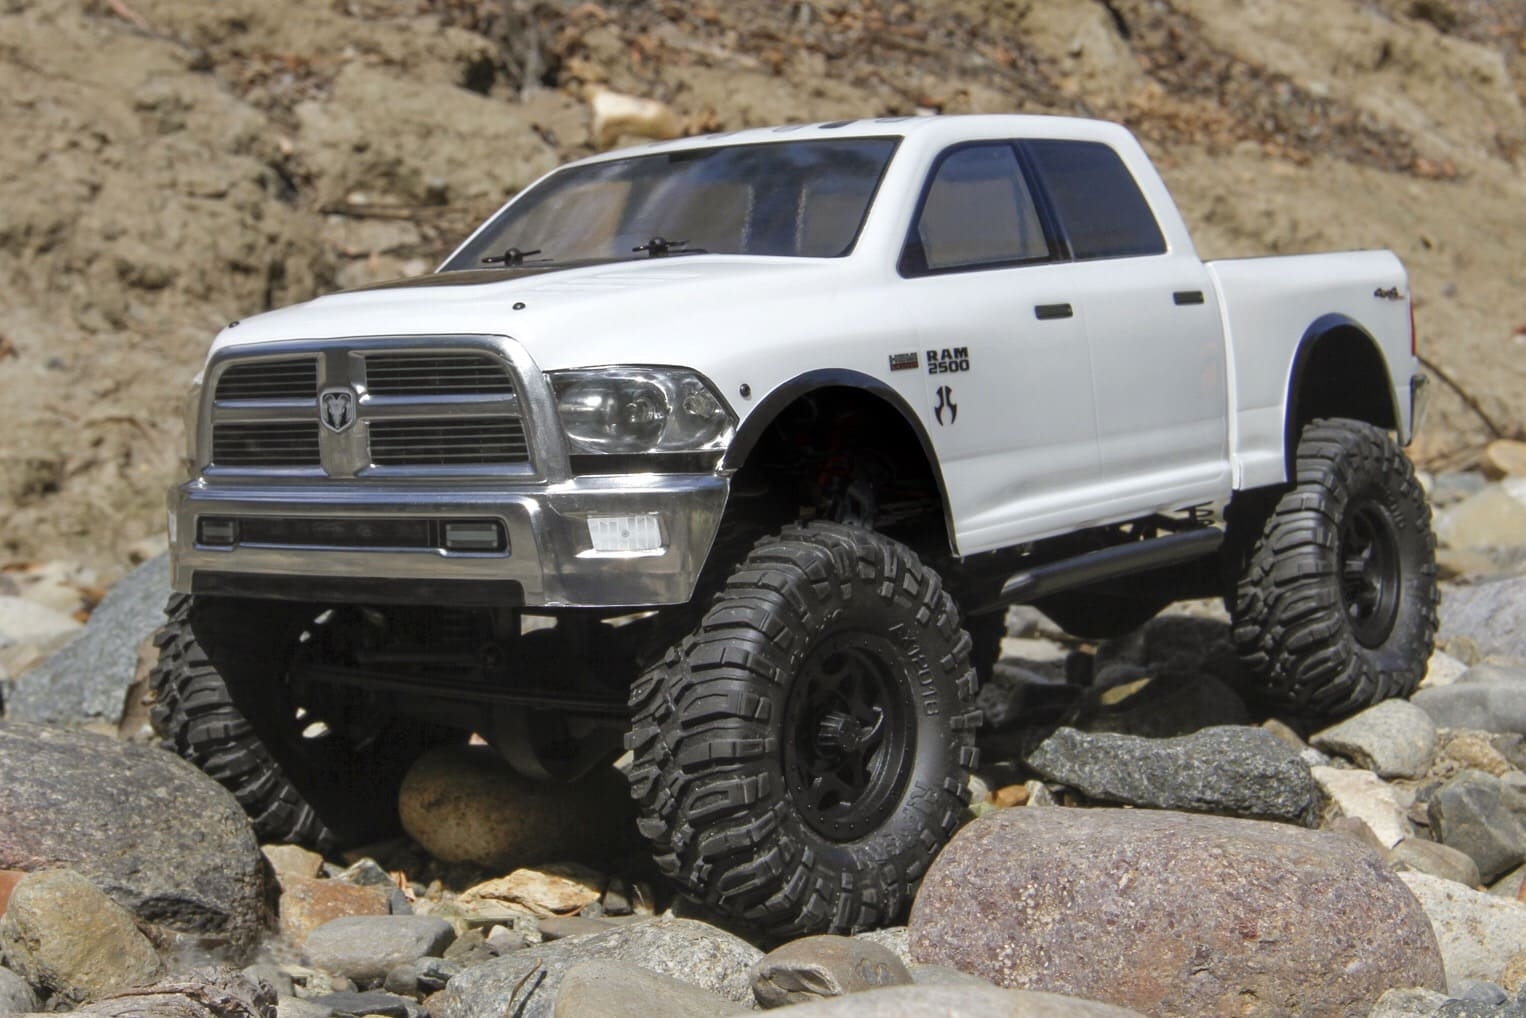 Axial releases a clear Ram Power Wagon body for the SCX10.